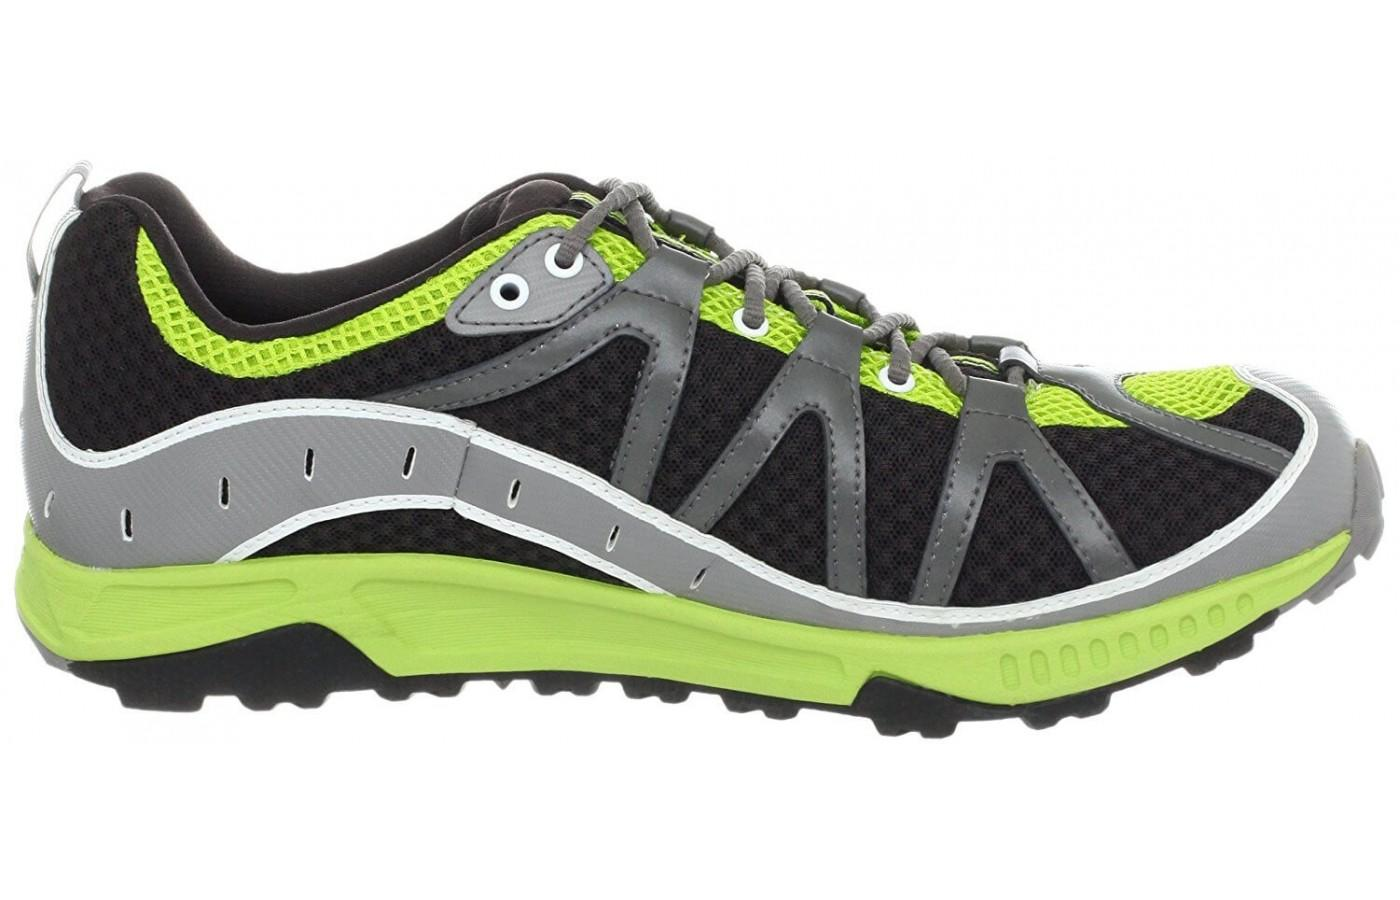 the Scarpa Spark is a tenacious but comfortable trail runner